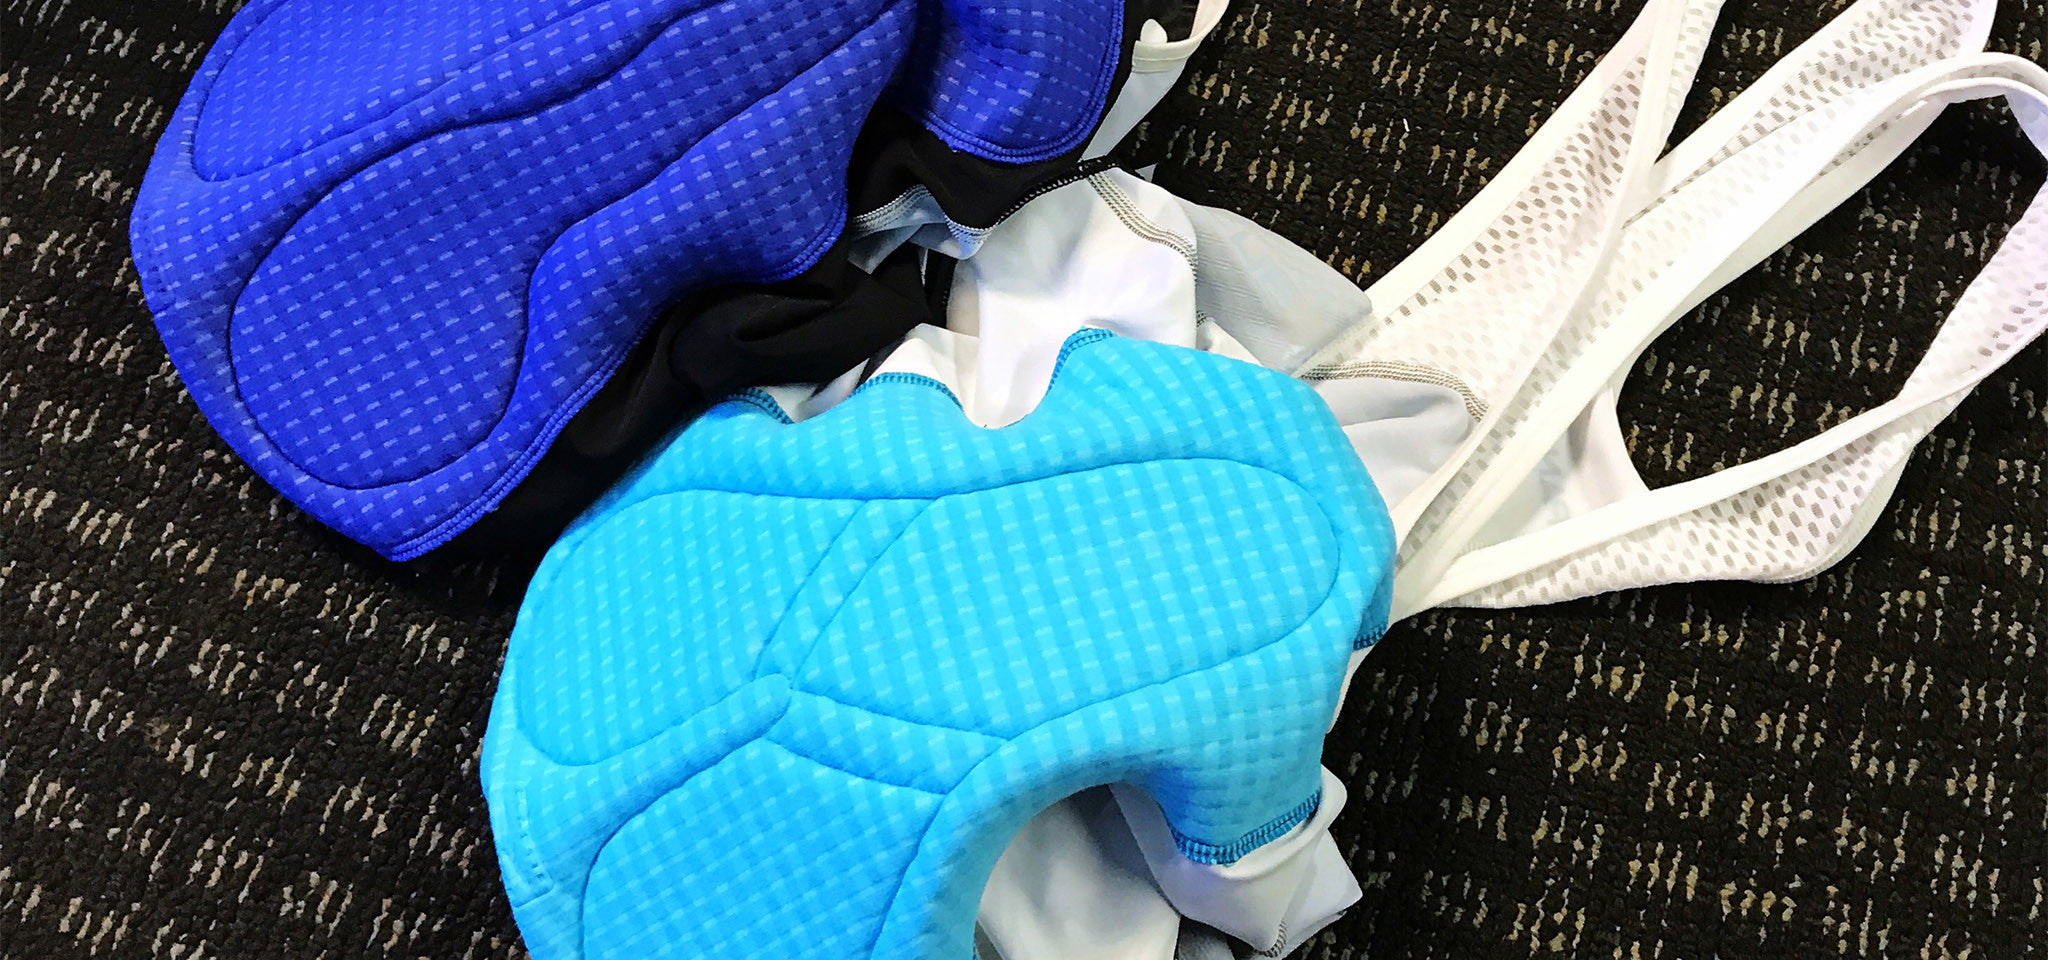 What Makes a Great Chamois Pad?